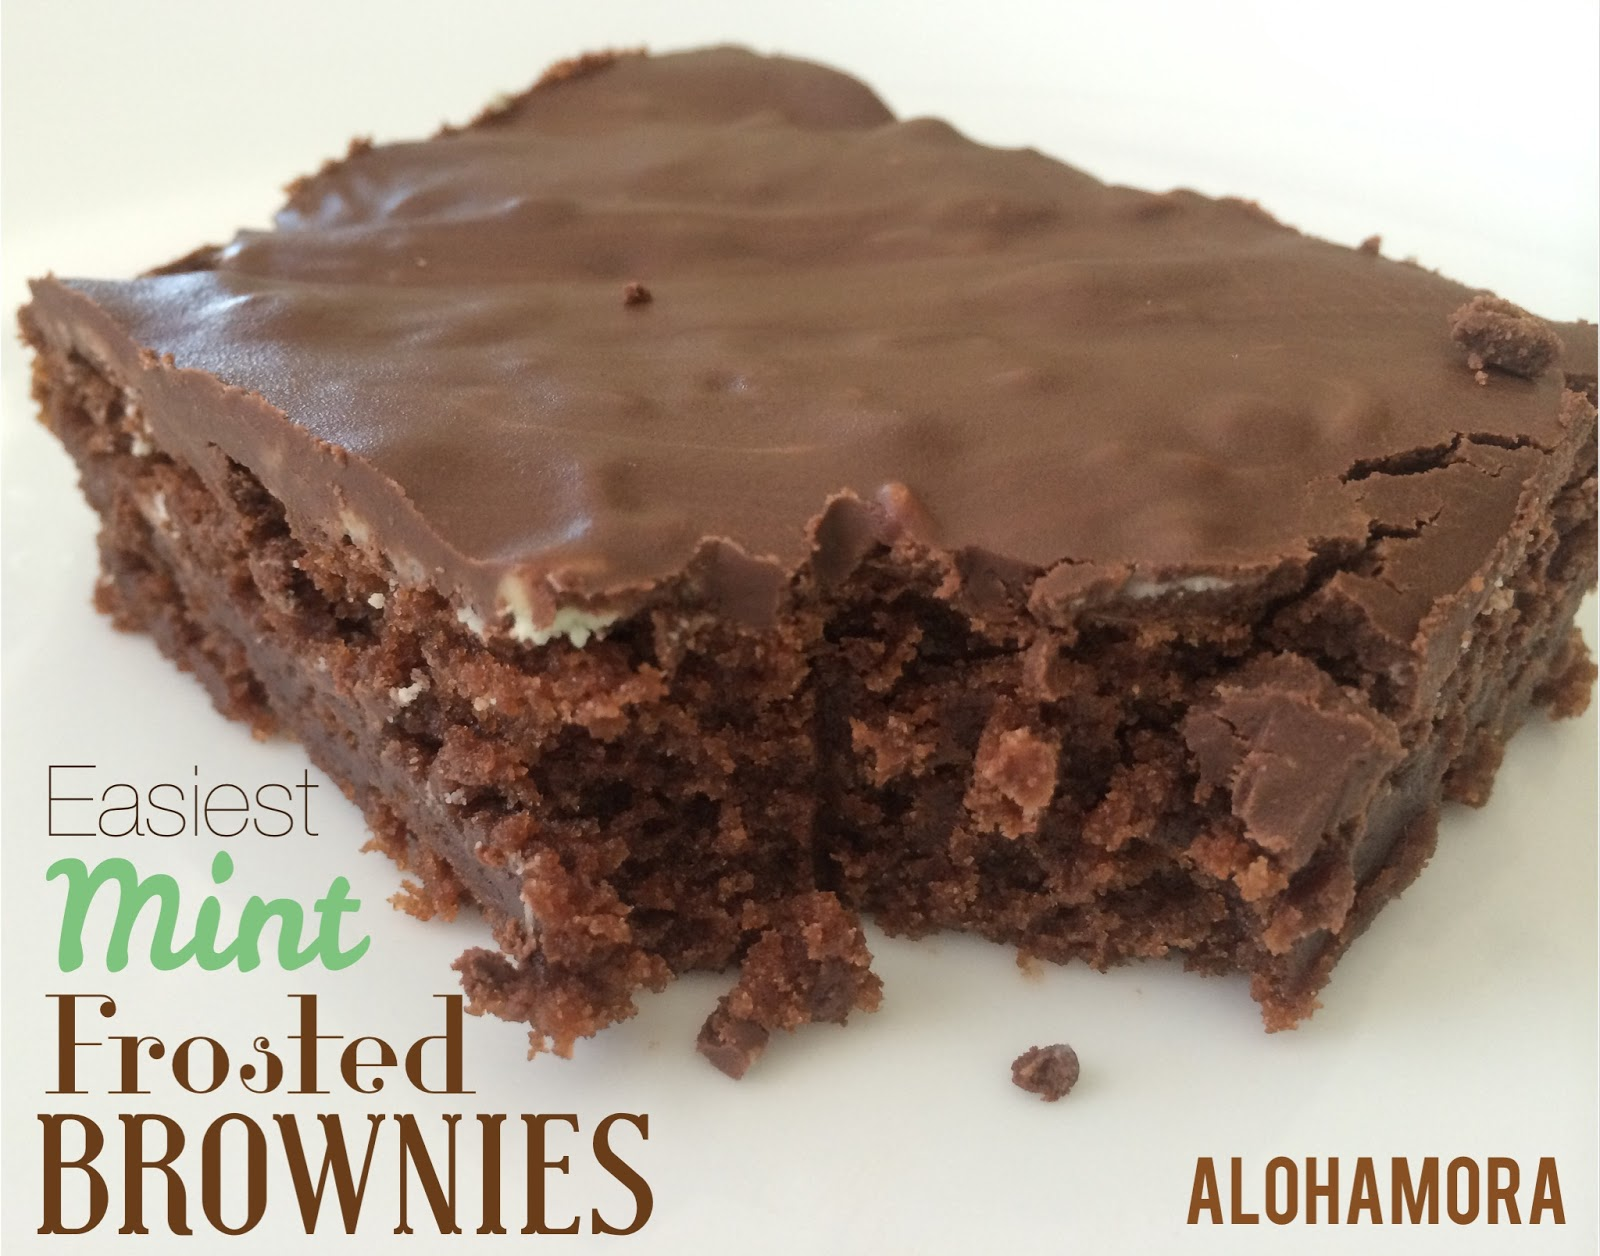 Easiest to make EVER Mint Frosted Brownies.  Just like BYU Mint Brownies or any Mint Frosted Brownies but super easy to make using boxed brownies and Andes Baking Chips.  Alohamora Open a Book http://alohamoraopenabook.blogspot.com/